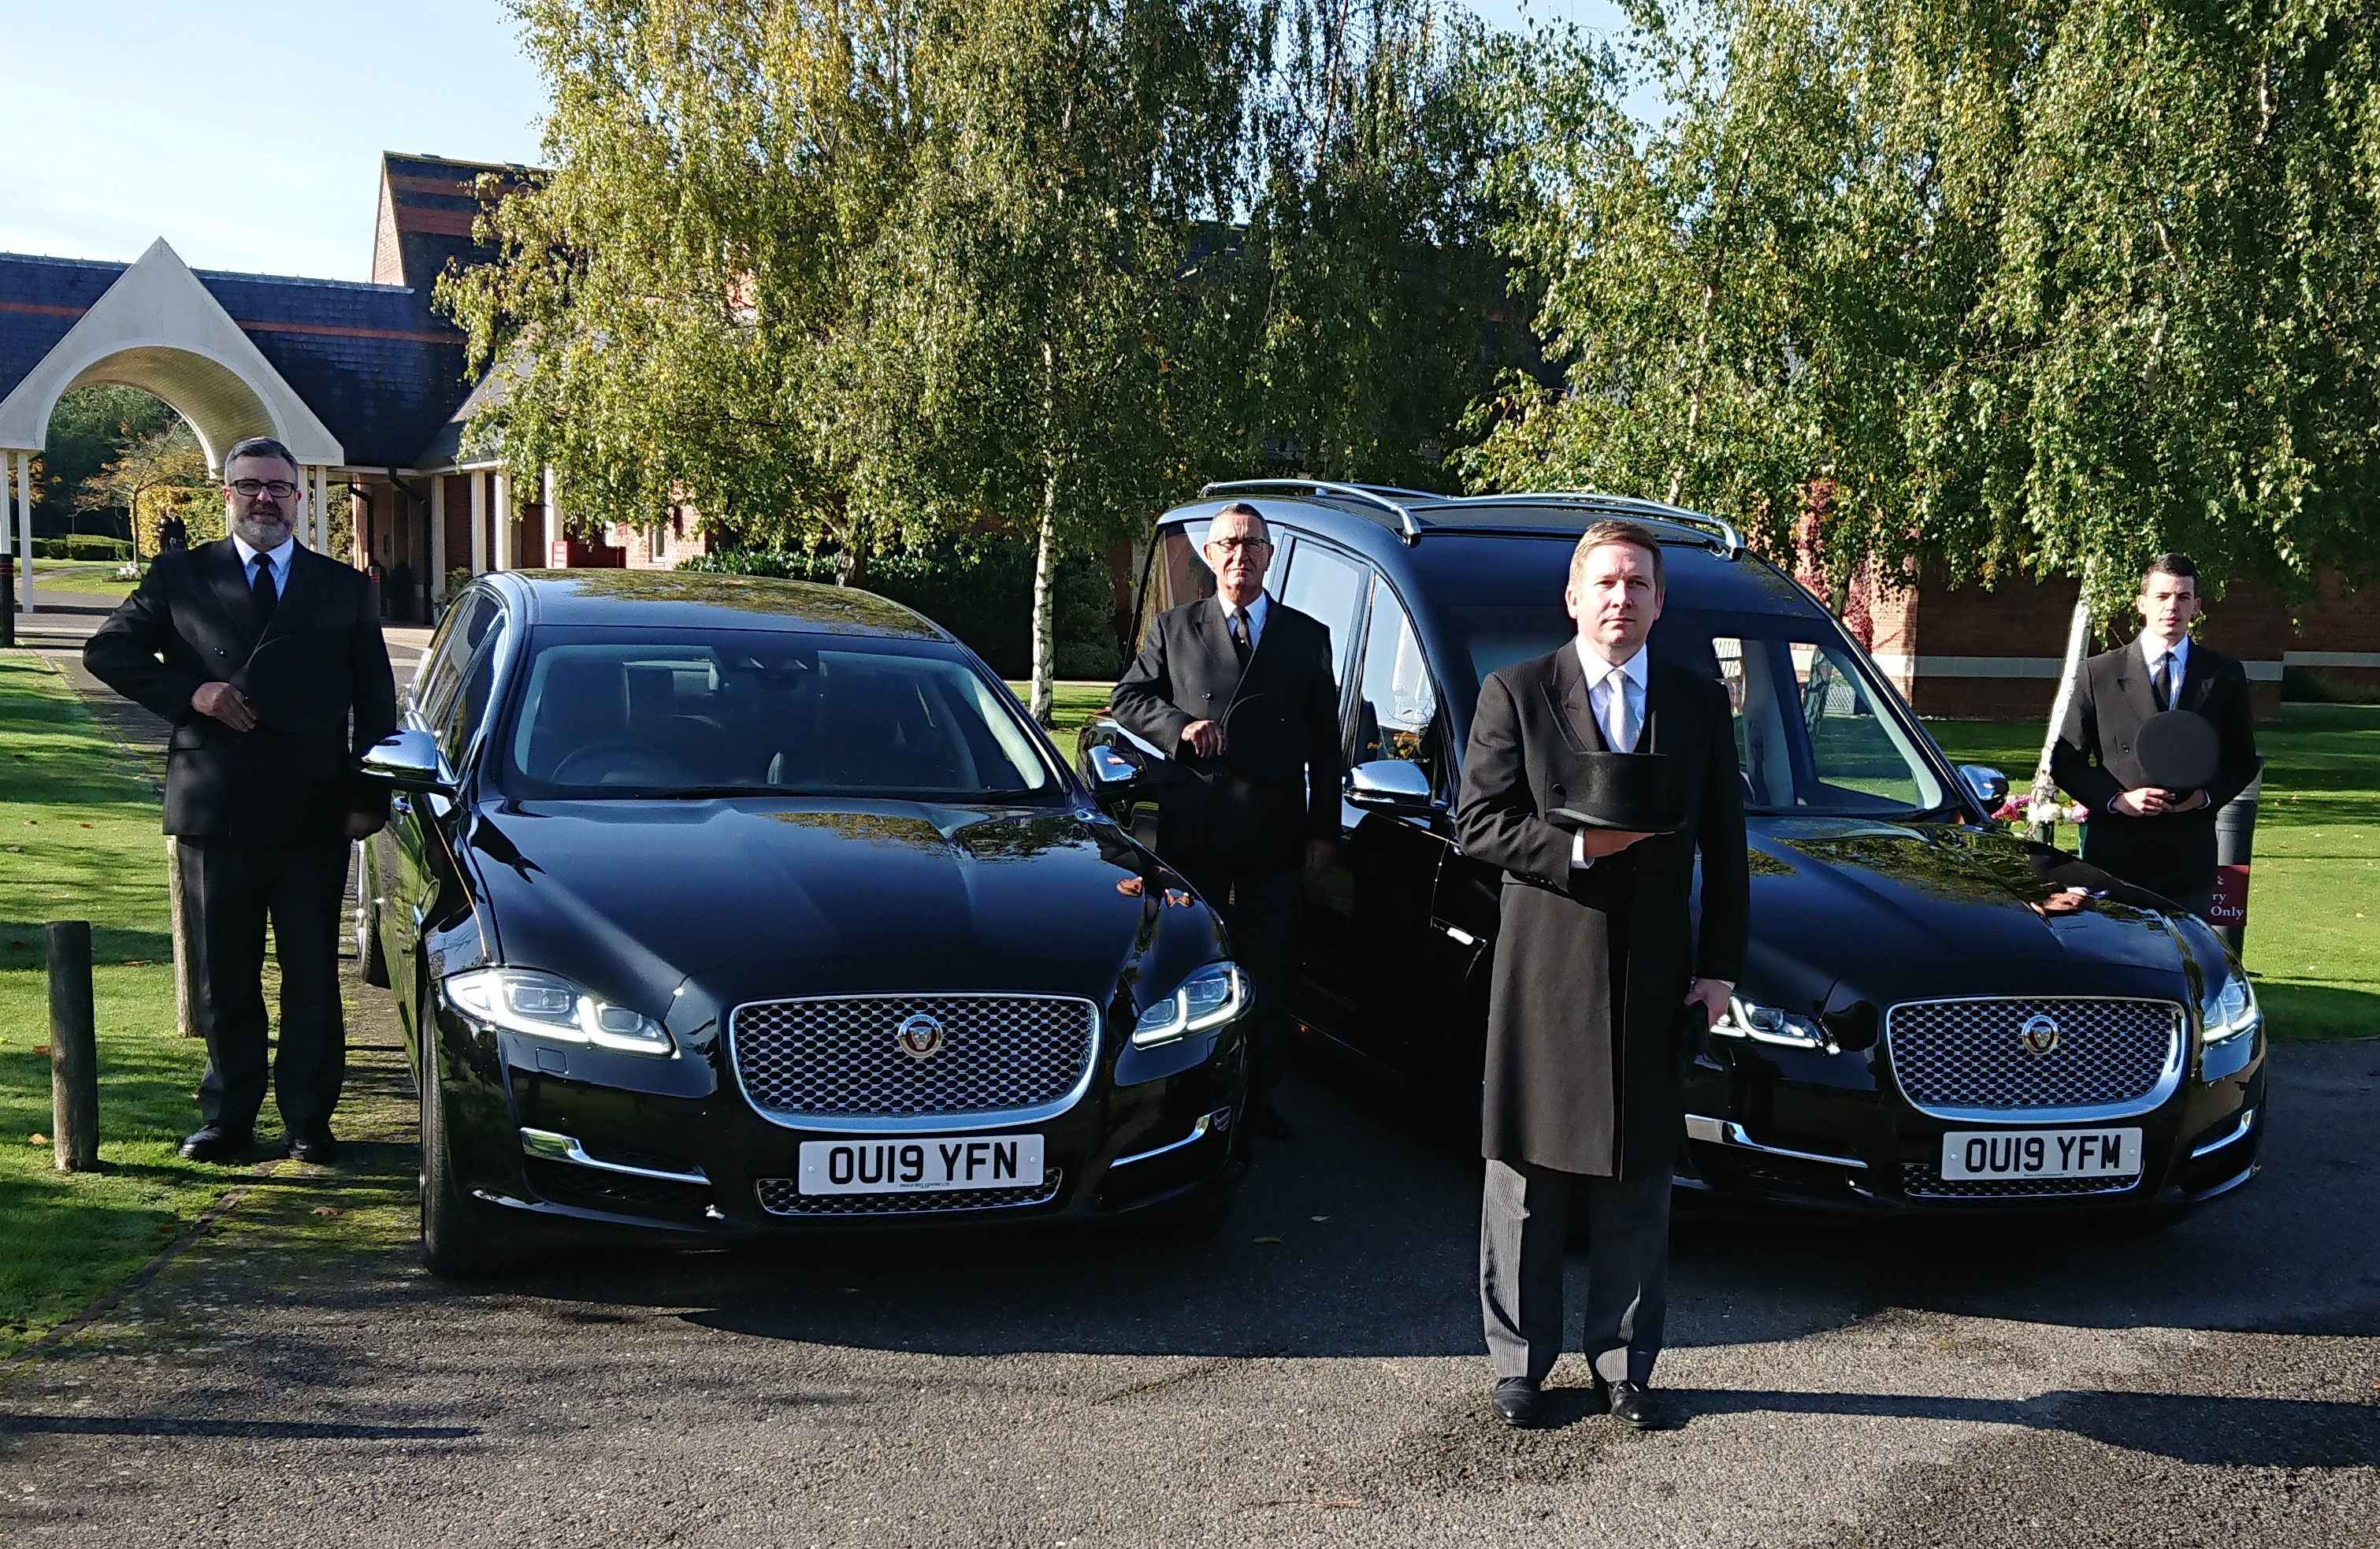 Bournes Funeral team standing in front of a vehicle